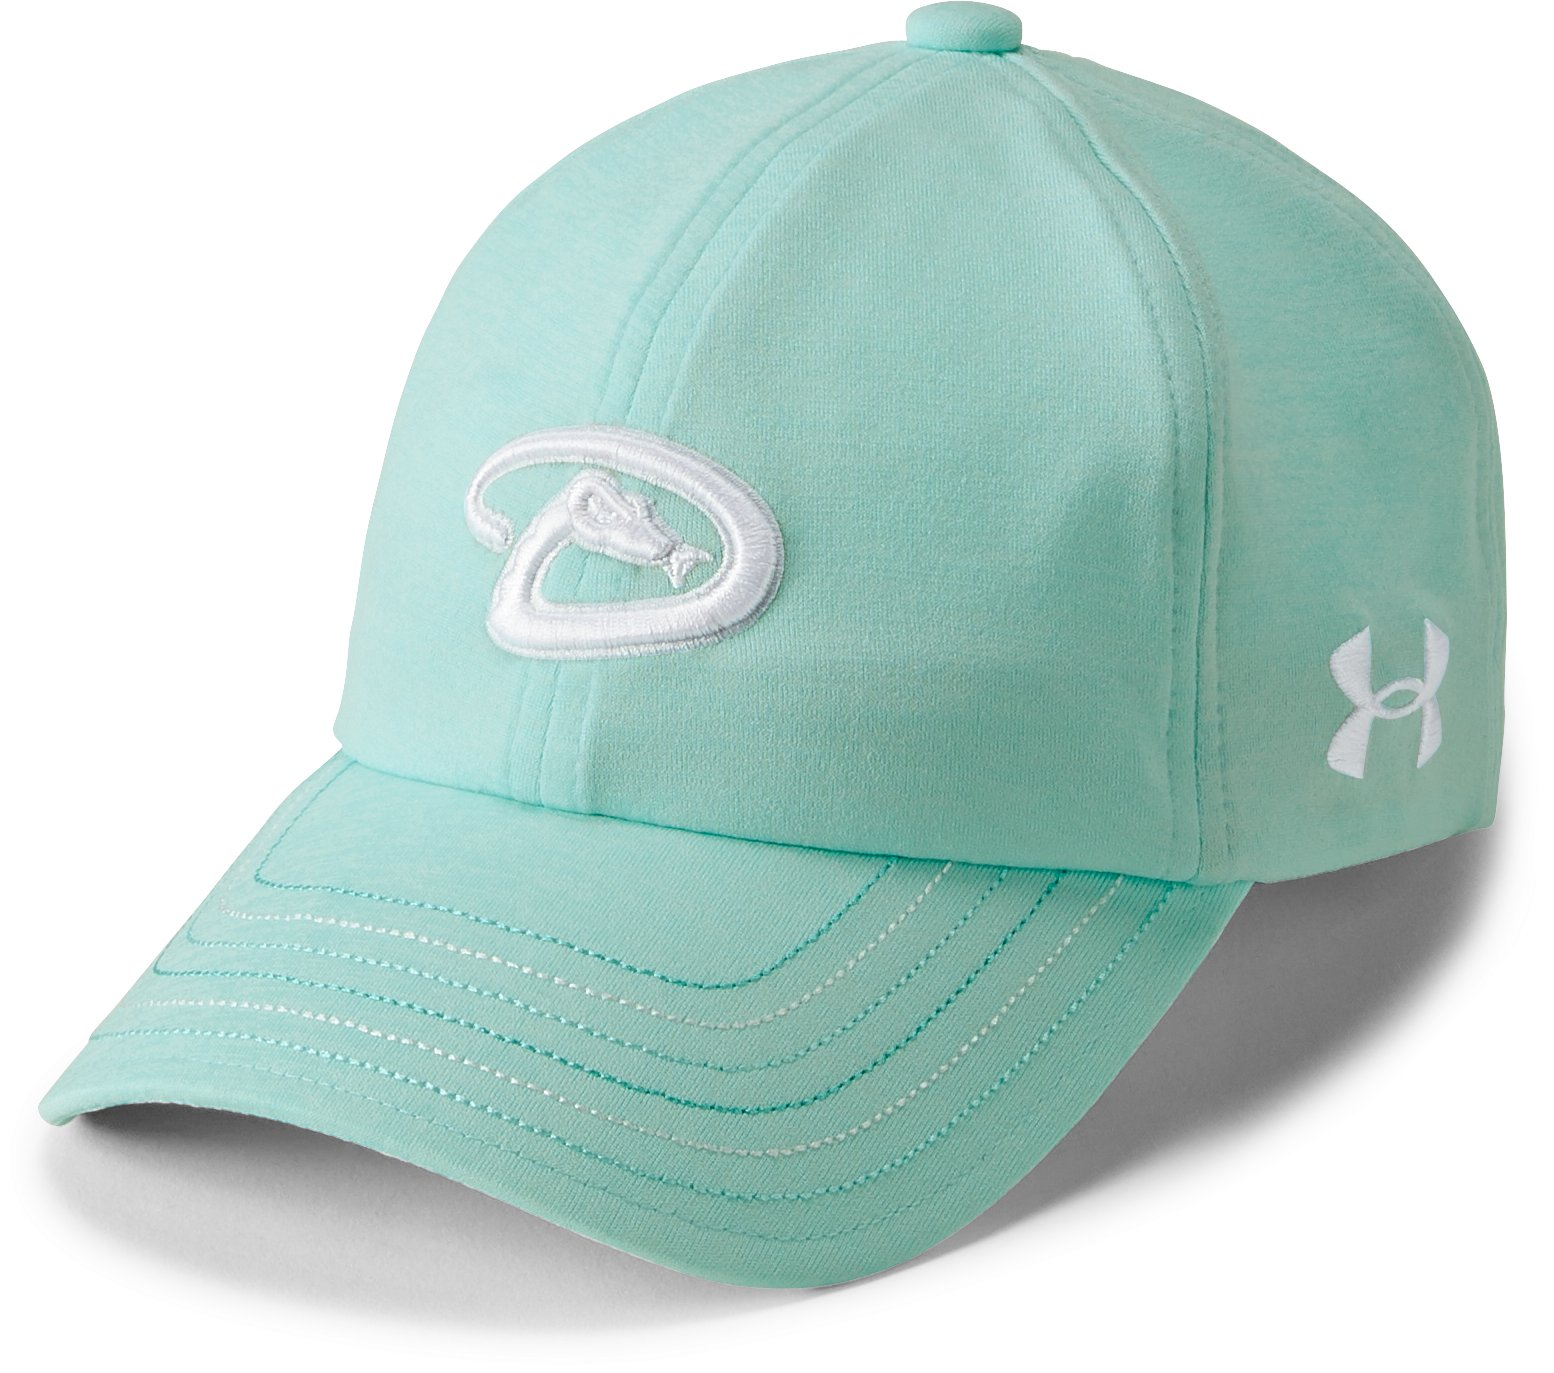 Girls' MLB Renegade Twist Cap, TROPICAL TIDE FADE HEATHER,